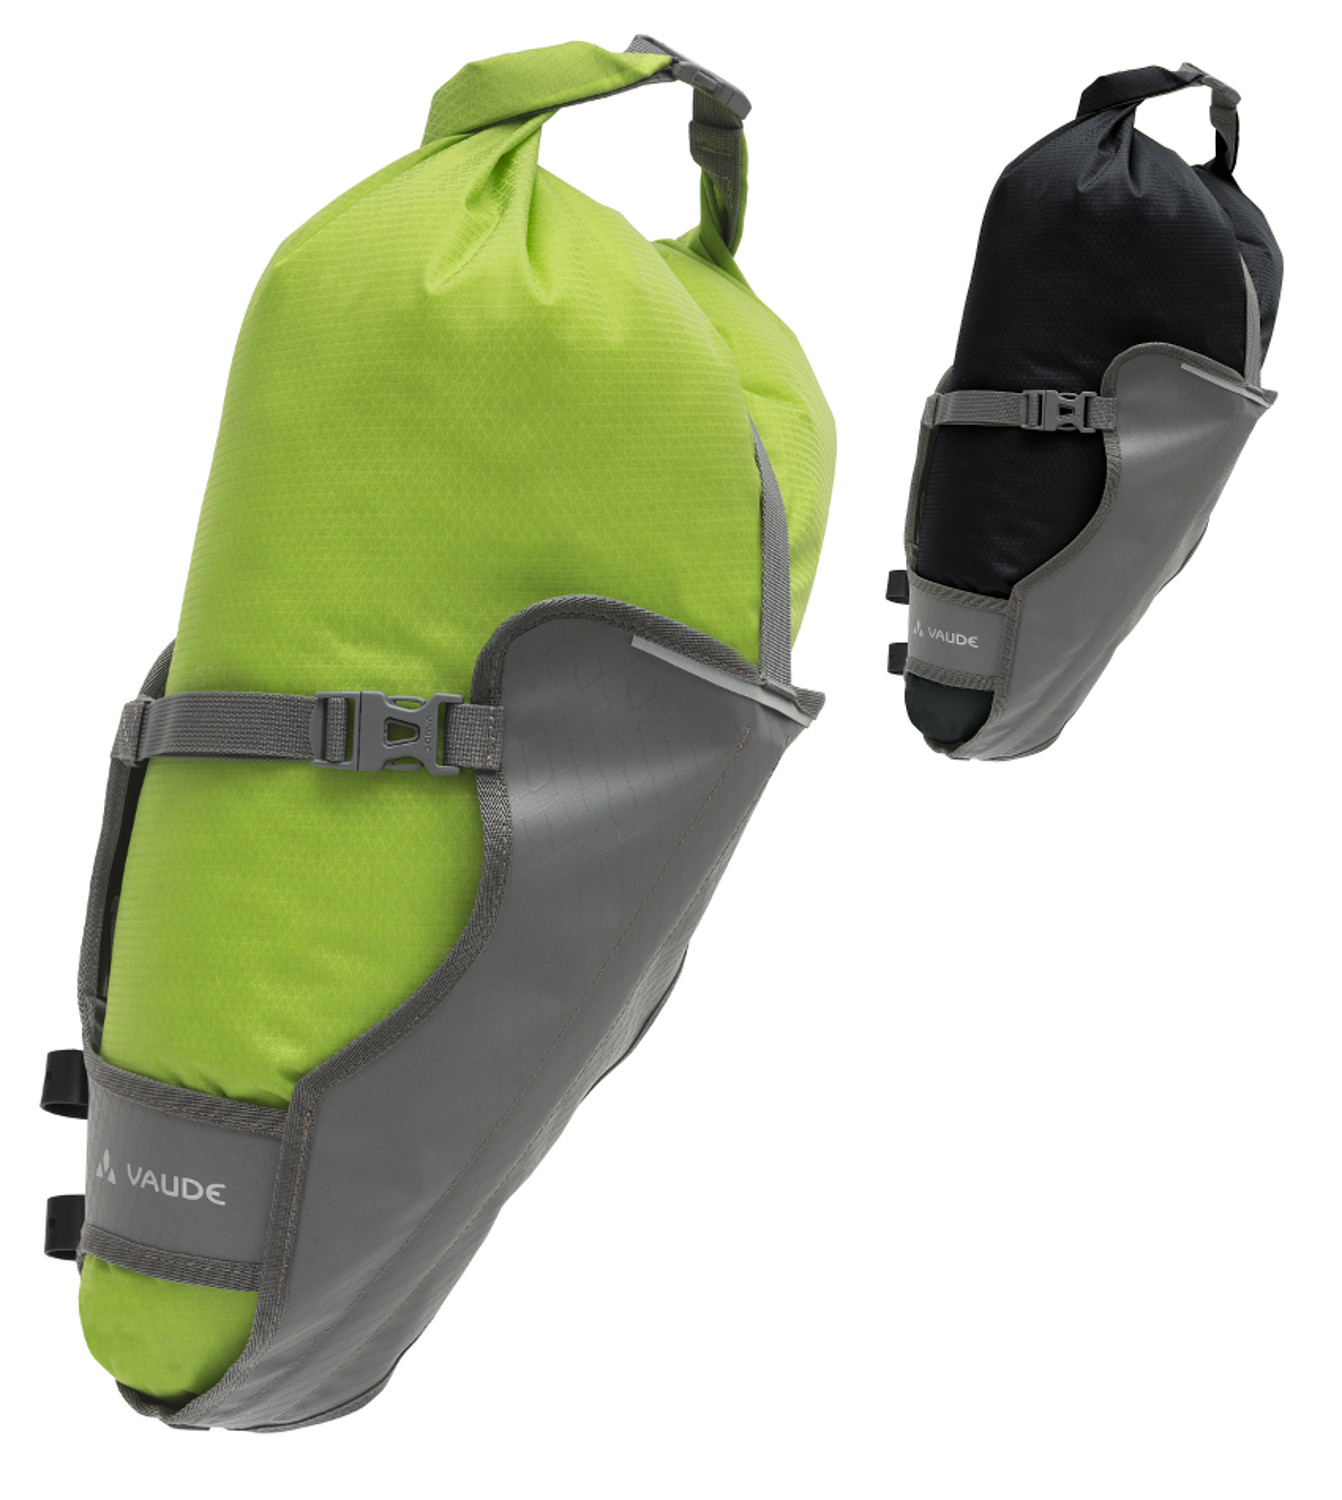 a2c15f9192 Impermeabile borsa sella Trailsaddle VAUDE.  https://www.JM-handelspunkt.de/Trailsaddle%20beide.jpg